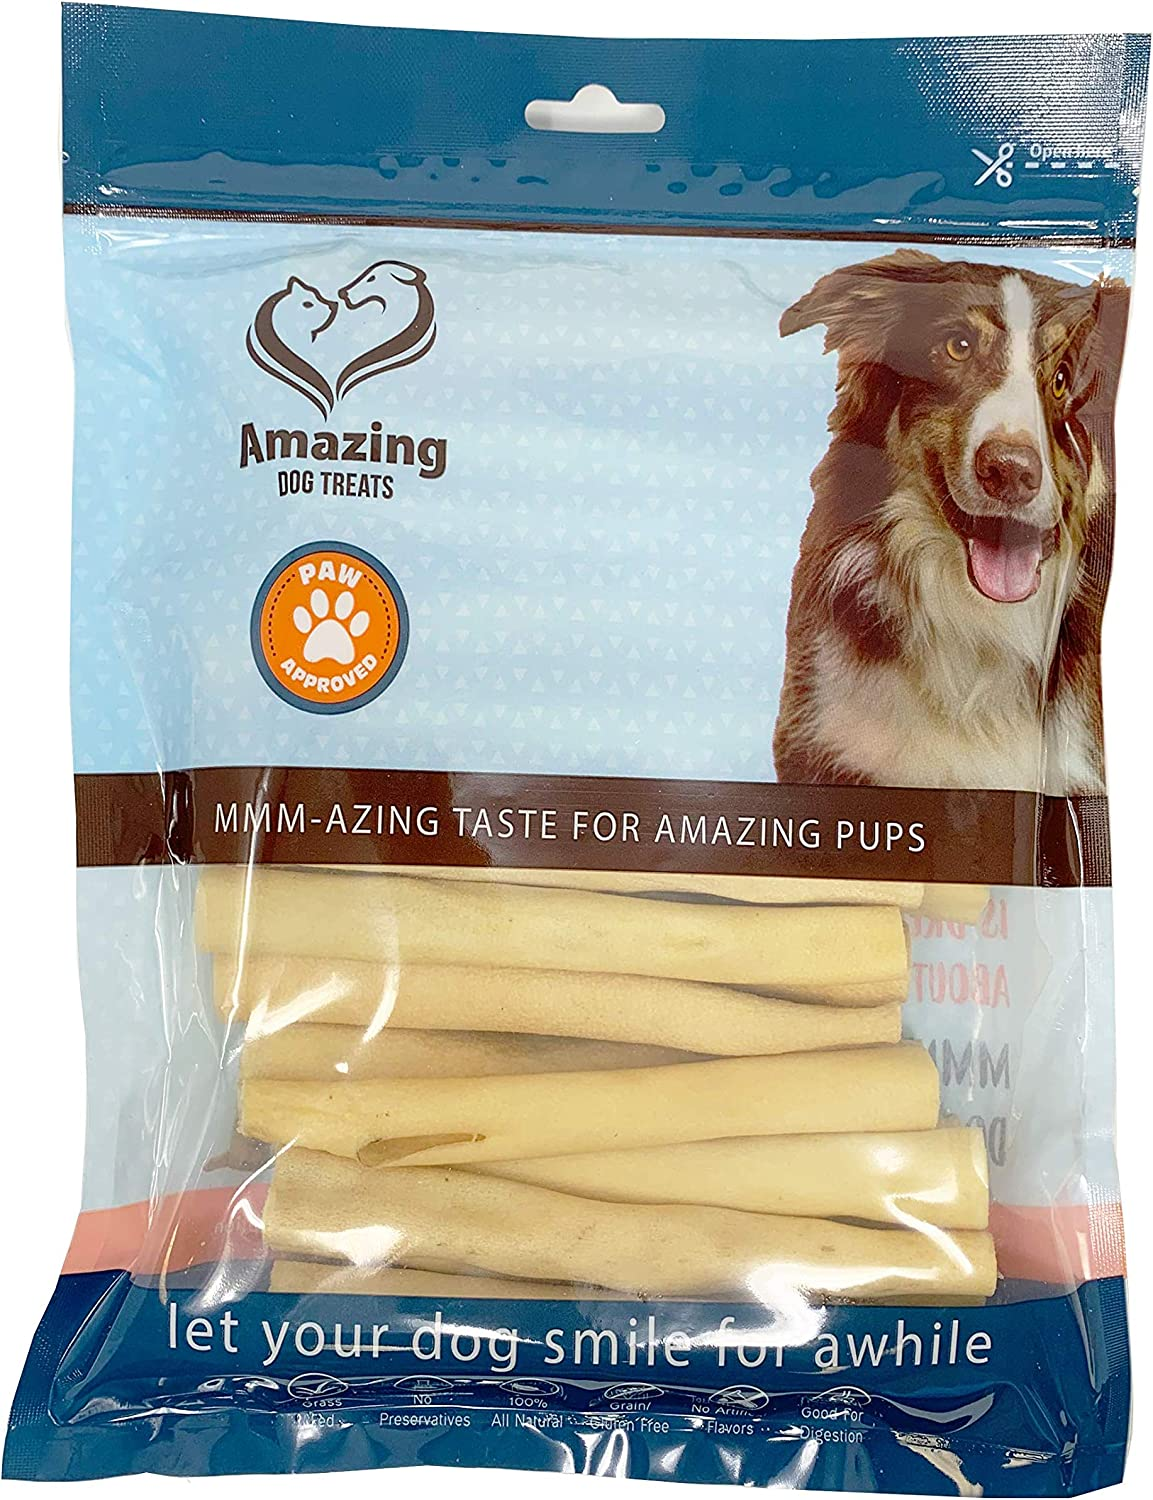 Filled Dog Bones Flavors Peanut Butter, Cheese, Bacon, Beef, etc. Made in USA Stuffed Bulk 3 to 6 Femur Dog Dental Treats Chews, American Made